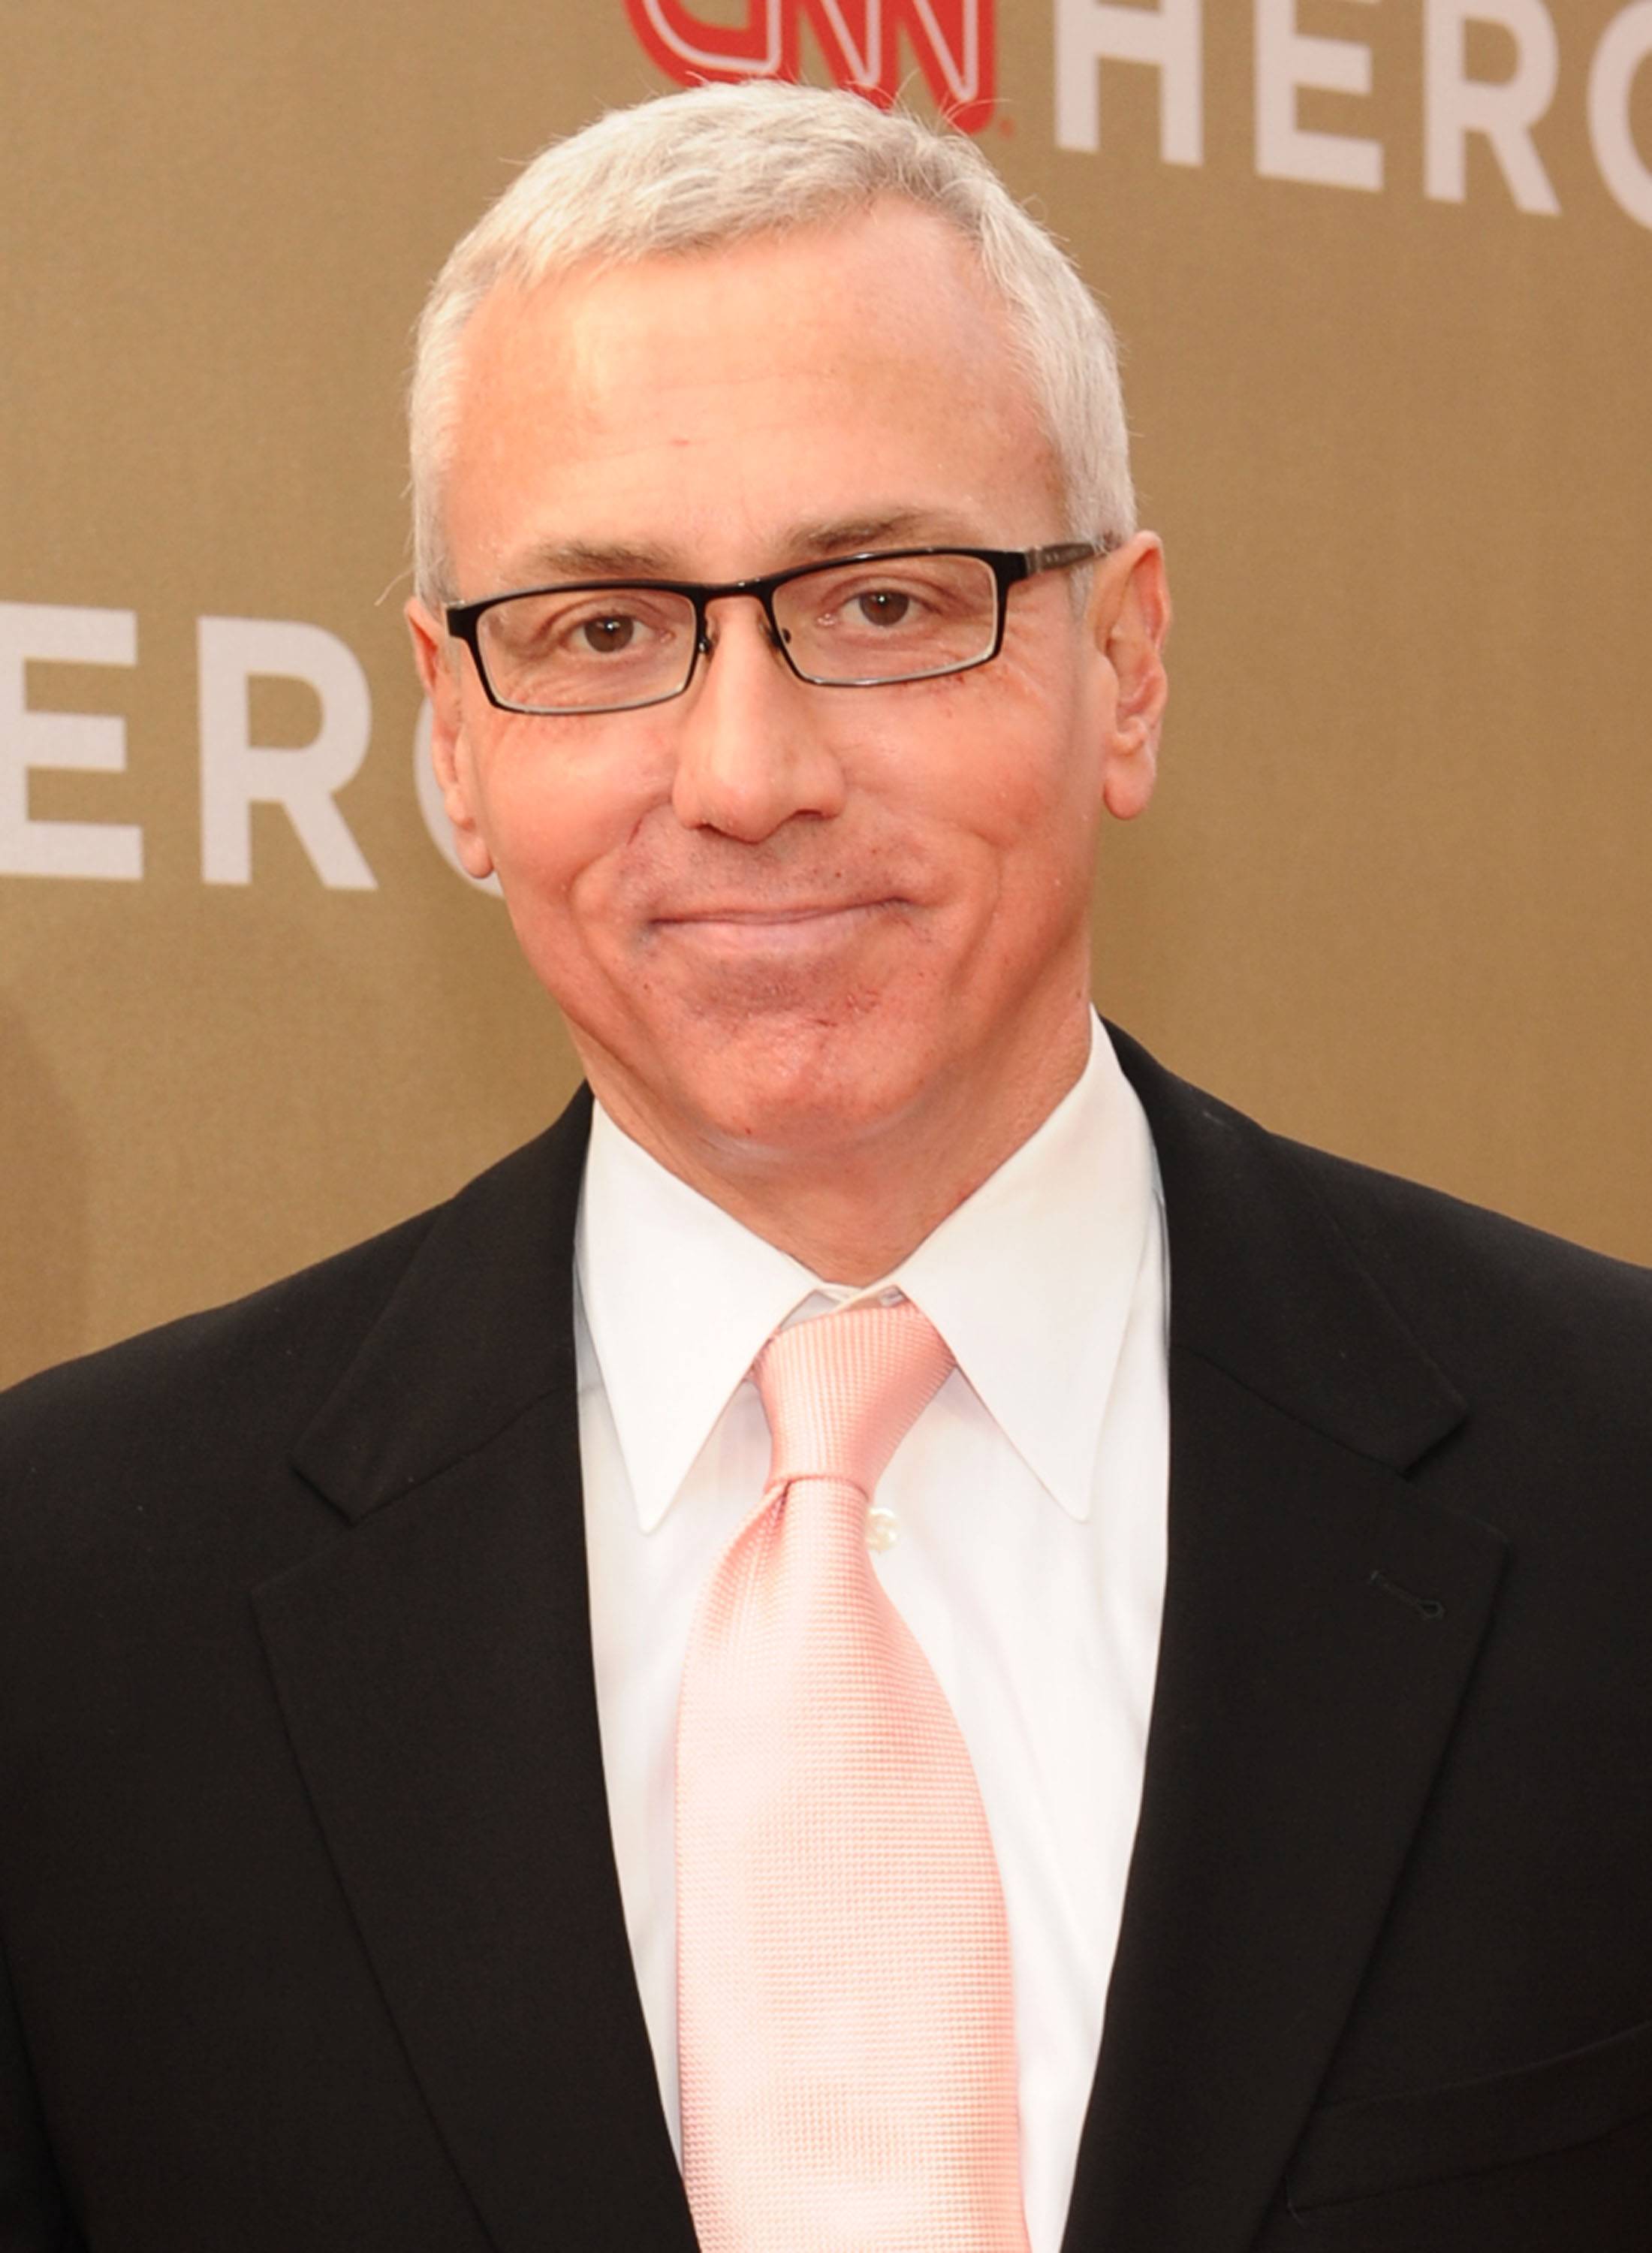 Dr. Drew Pinsky (Getty Images)